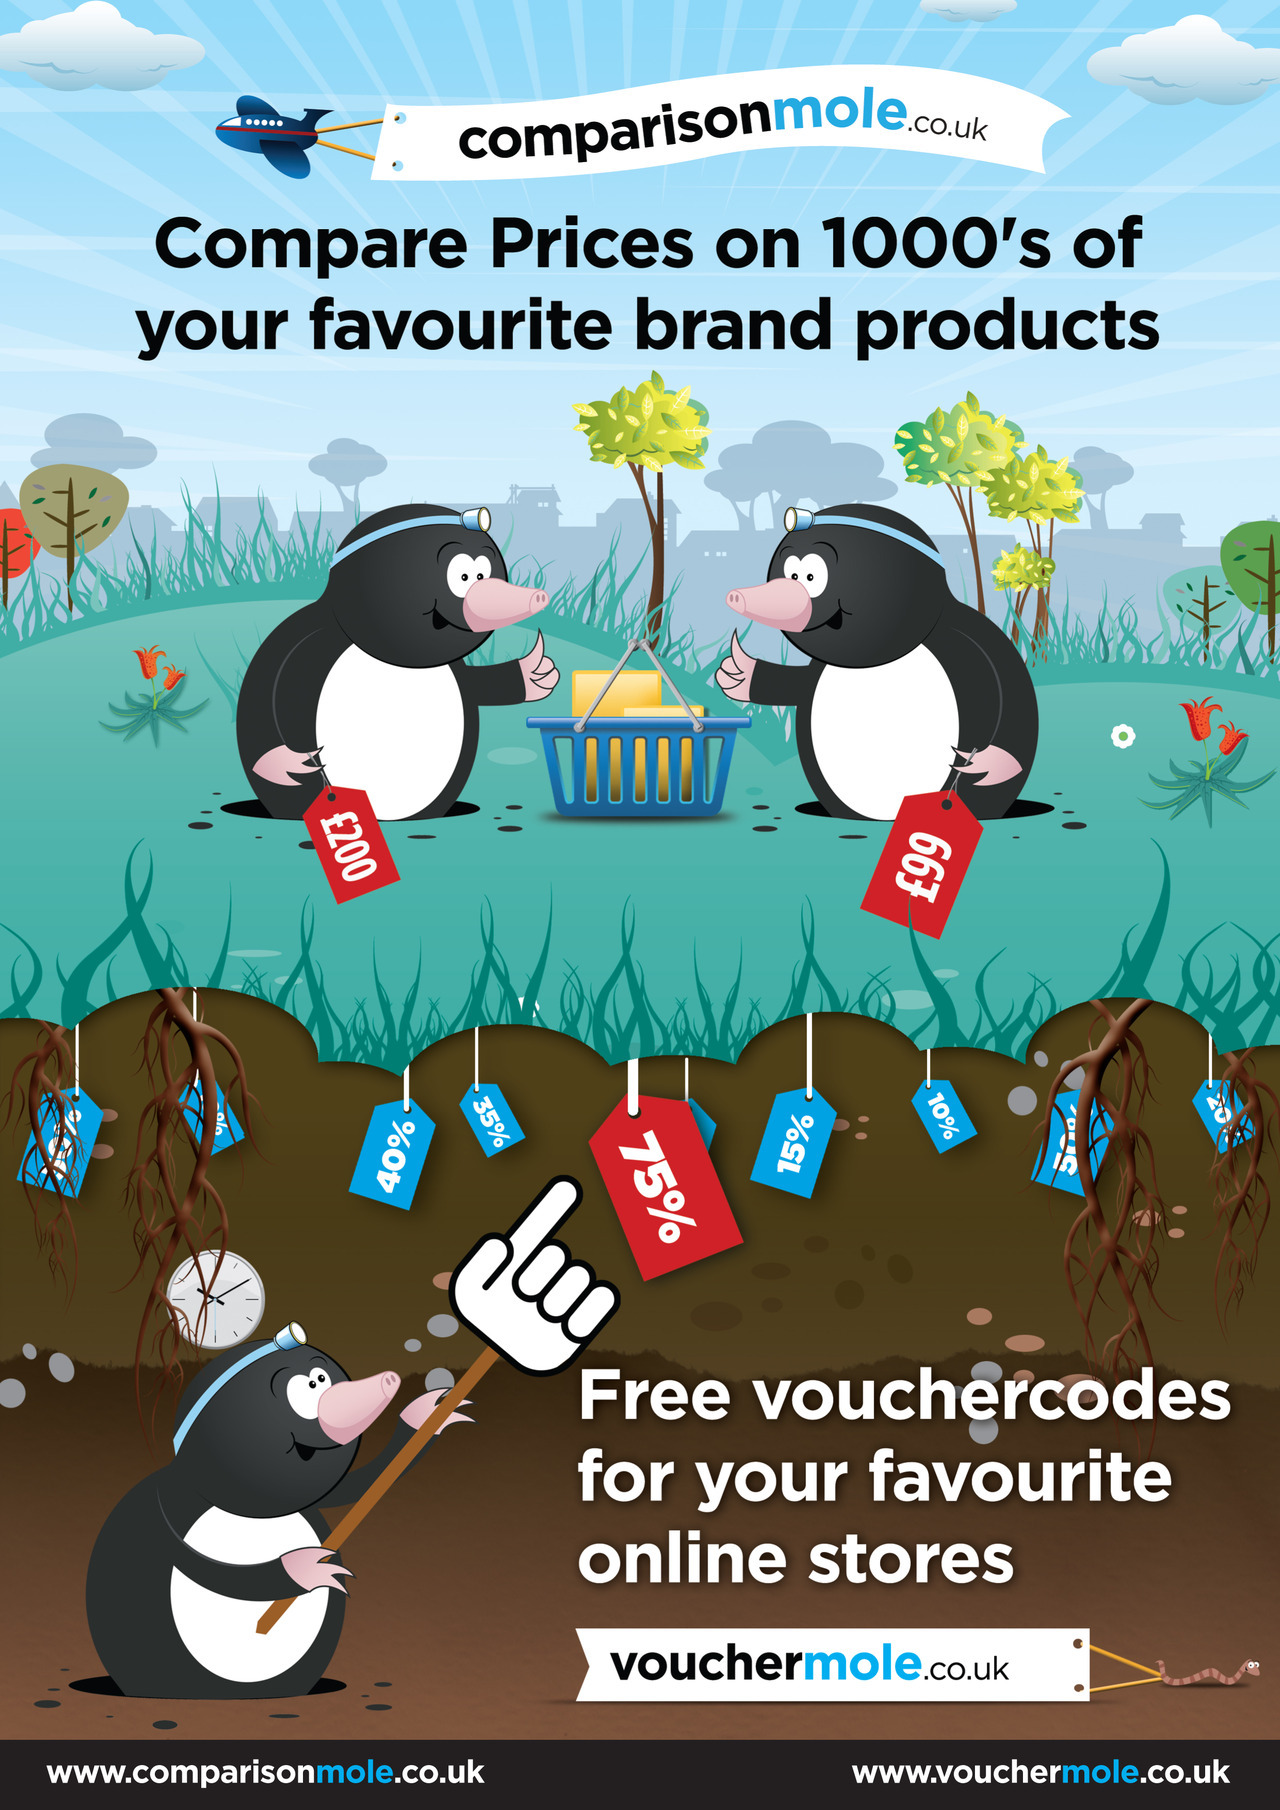 Voucher Websites Illustration for an advert.